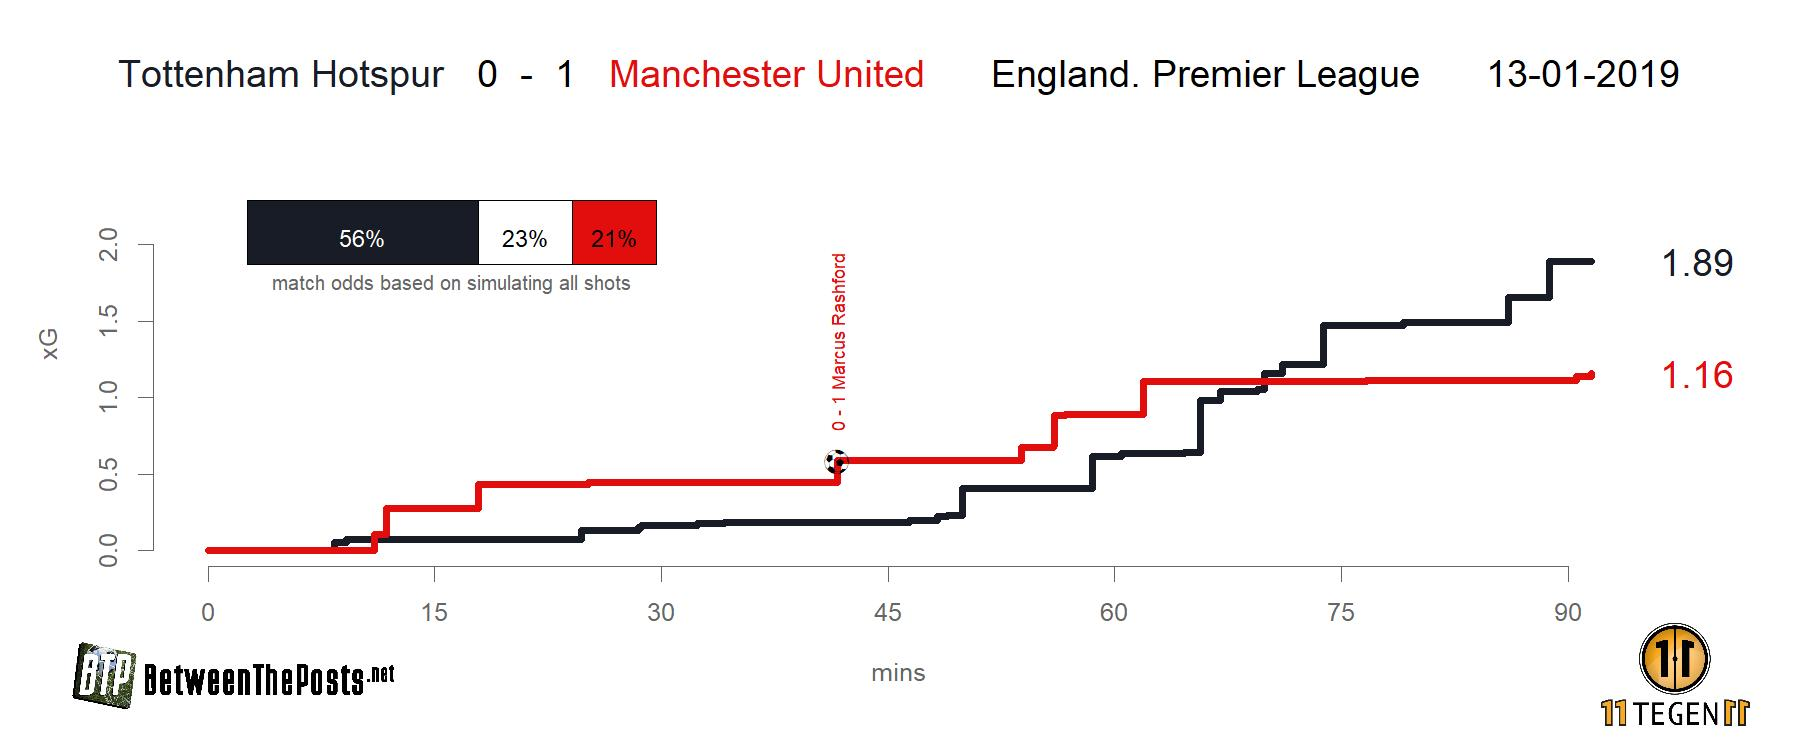 Expected goals plot Tottenham Hotspur - Manchester United 0-1 Premier League